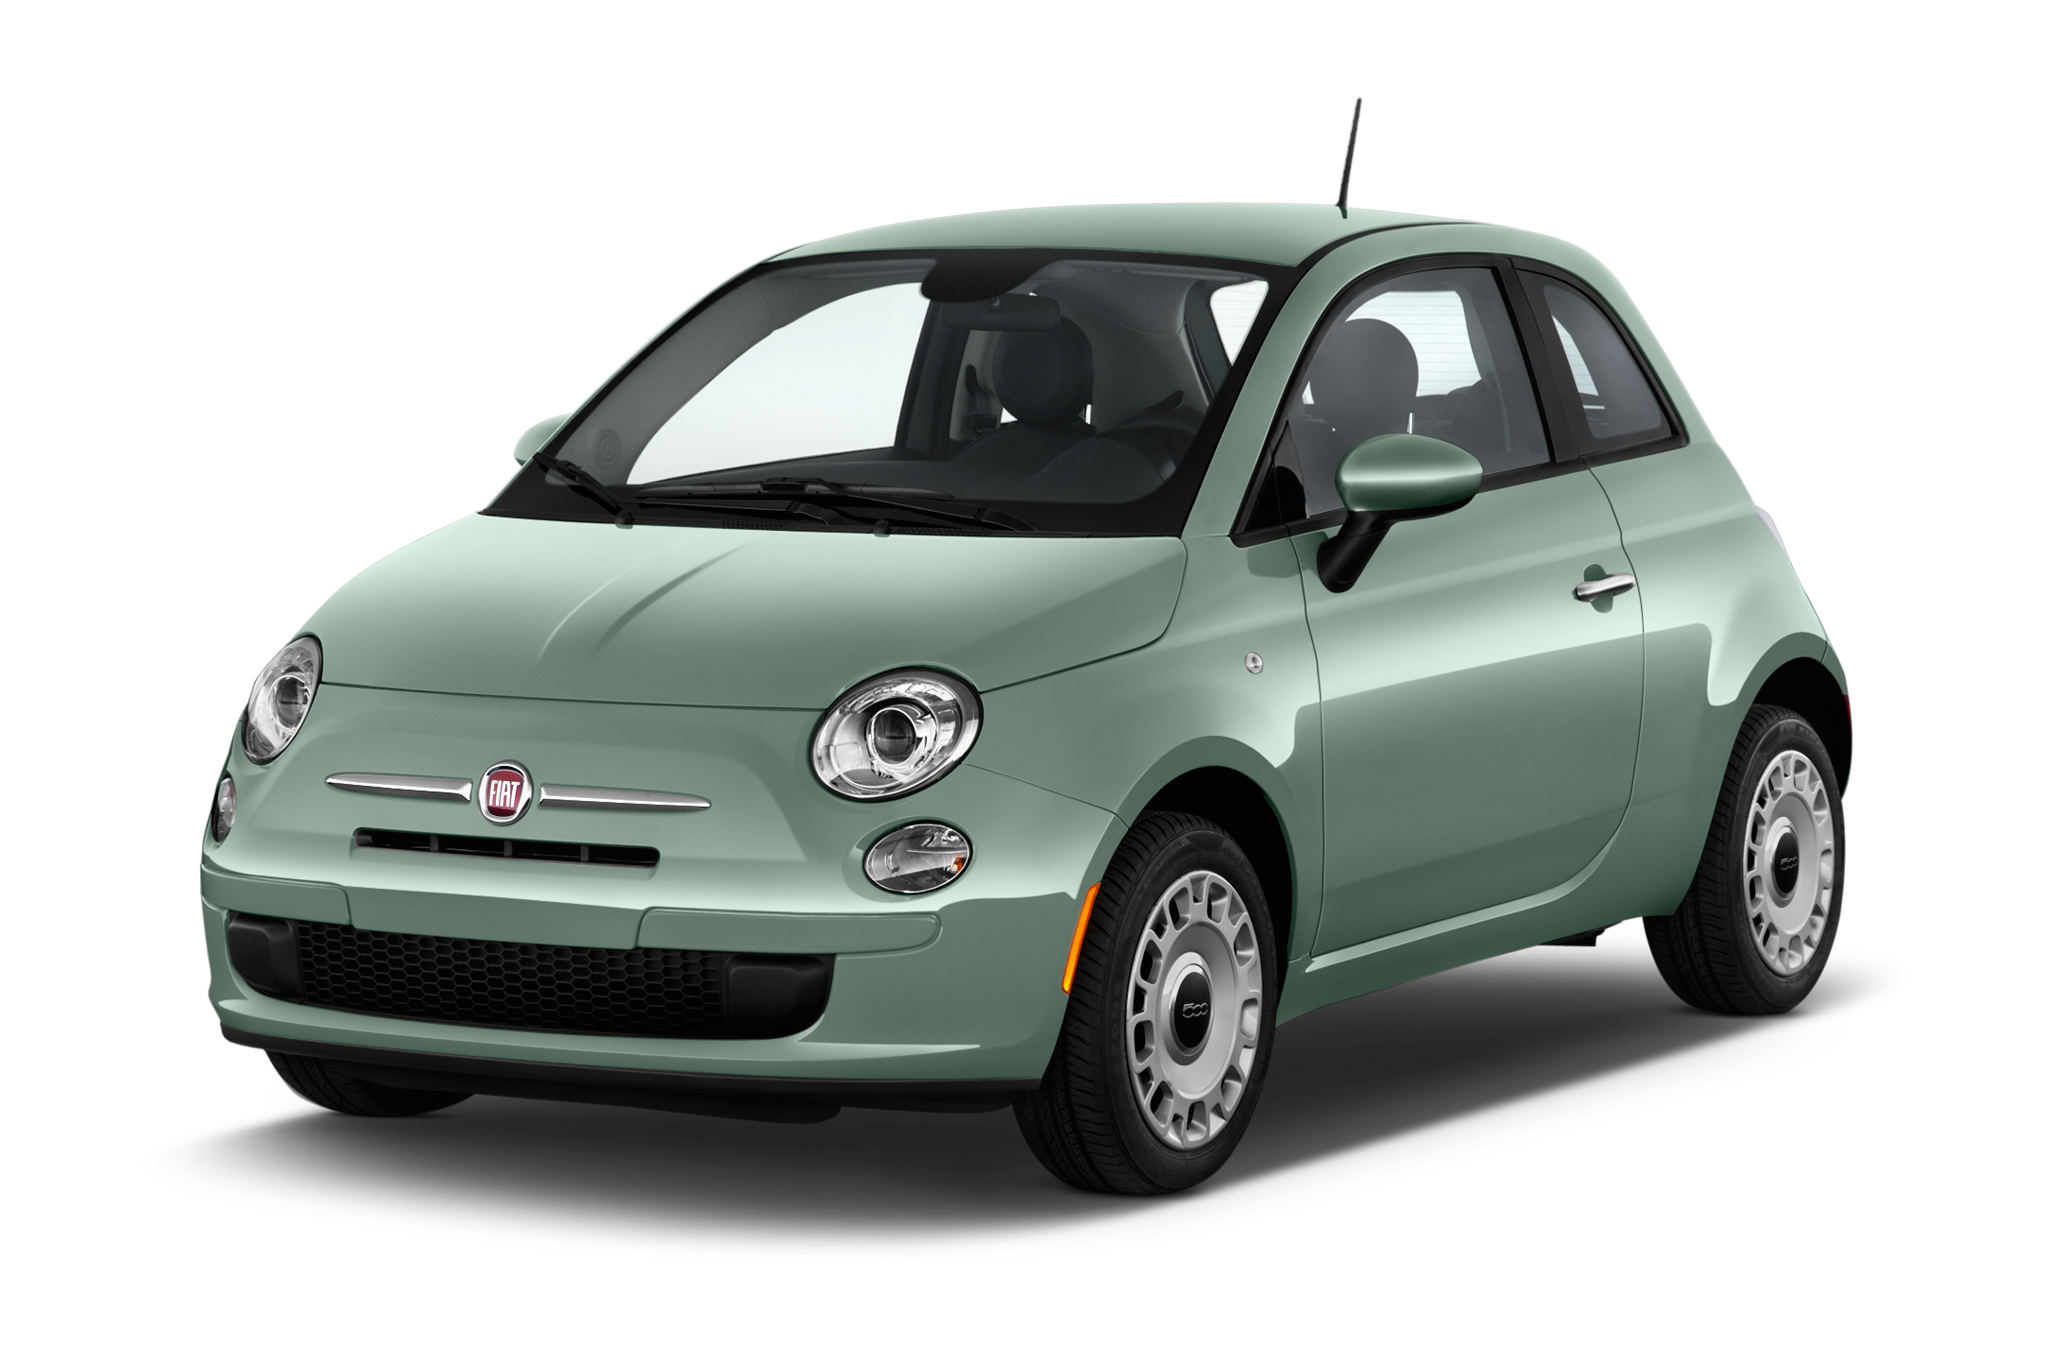 2017 fiat 500 gets fresh appearance packages automobile magazine. Black Bedroom Furniture Sets. Home Design Ideas